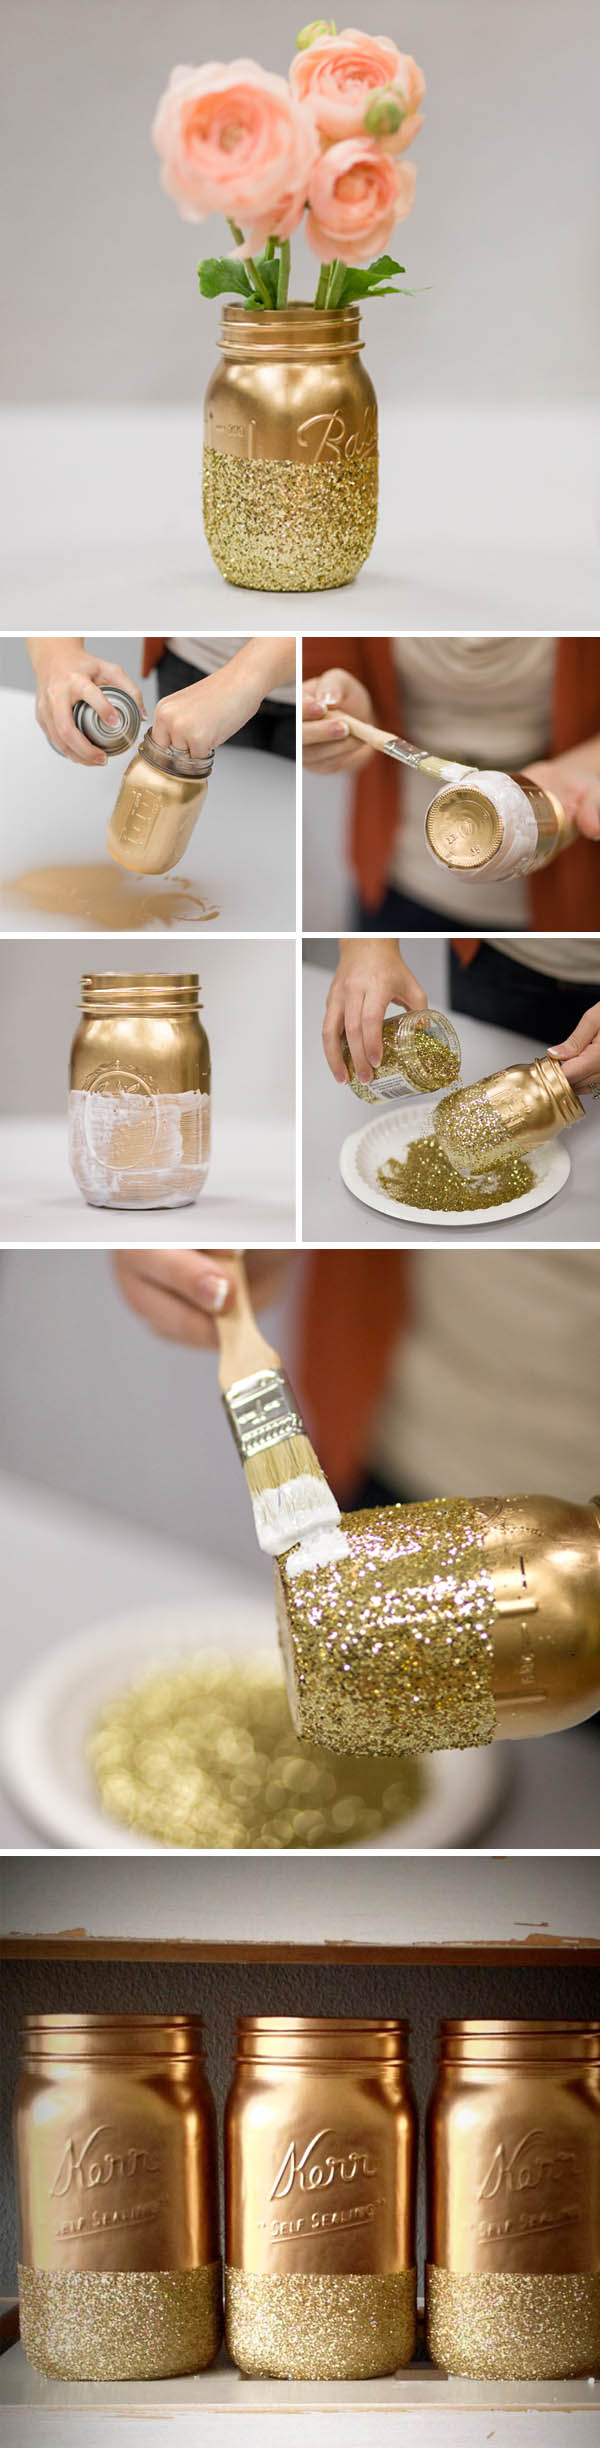 Mason Jar Diy Part - 34: DIY Glitter Gold Mason Jar Vase For Weddings